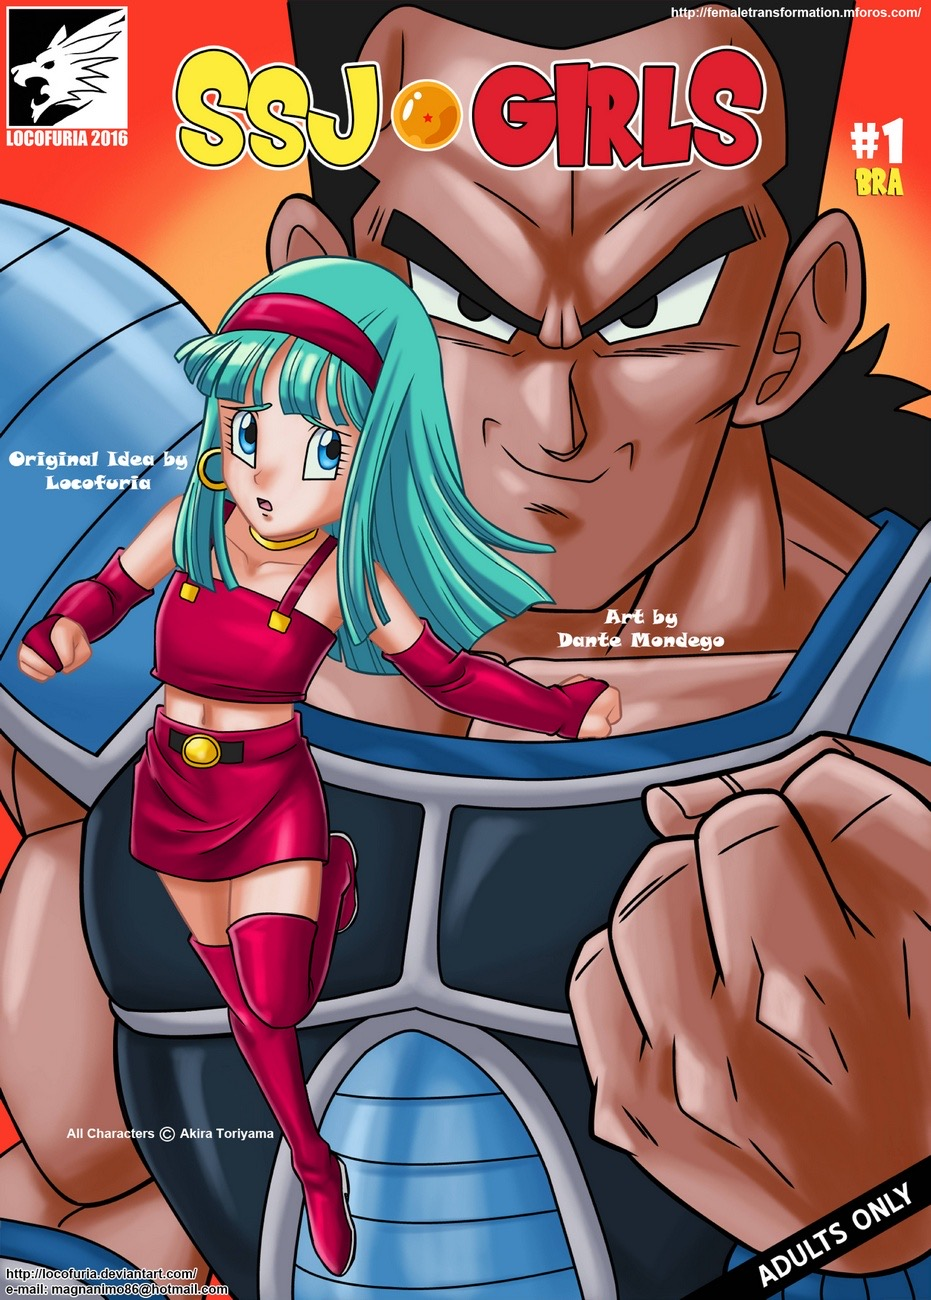 Dragon-Ball-GT-Young-Girl-super-Saiyan-Bulla-Bra-Brief-Bura-Eschalot-ブラ-gets-force-fucked-Porn-Comics-turned-out-by-Tora-トー-Gets-Drugged-small-breasts-grow-big-doggy-style-straight-sex-creampie-Hentai-Manga-SSJ-Girls-#1